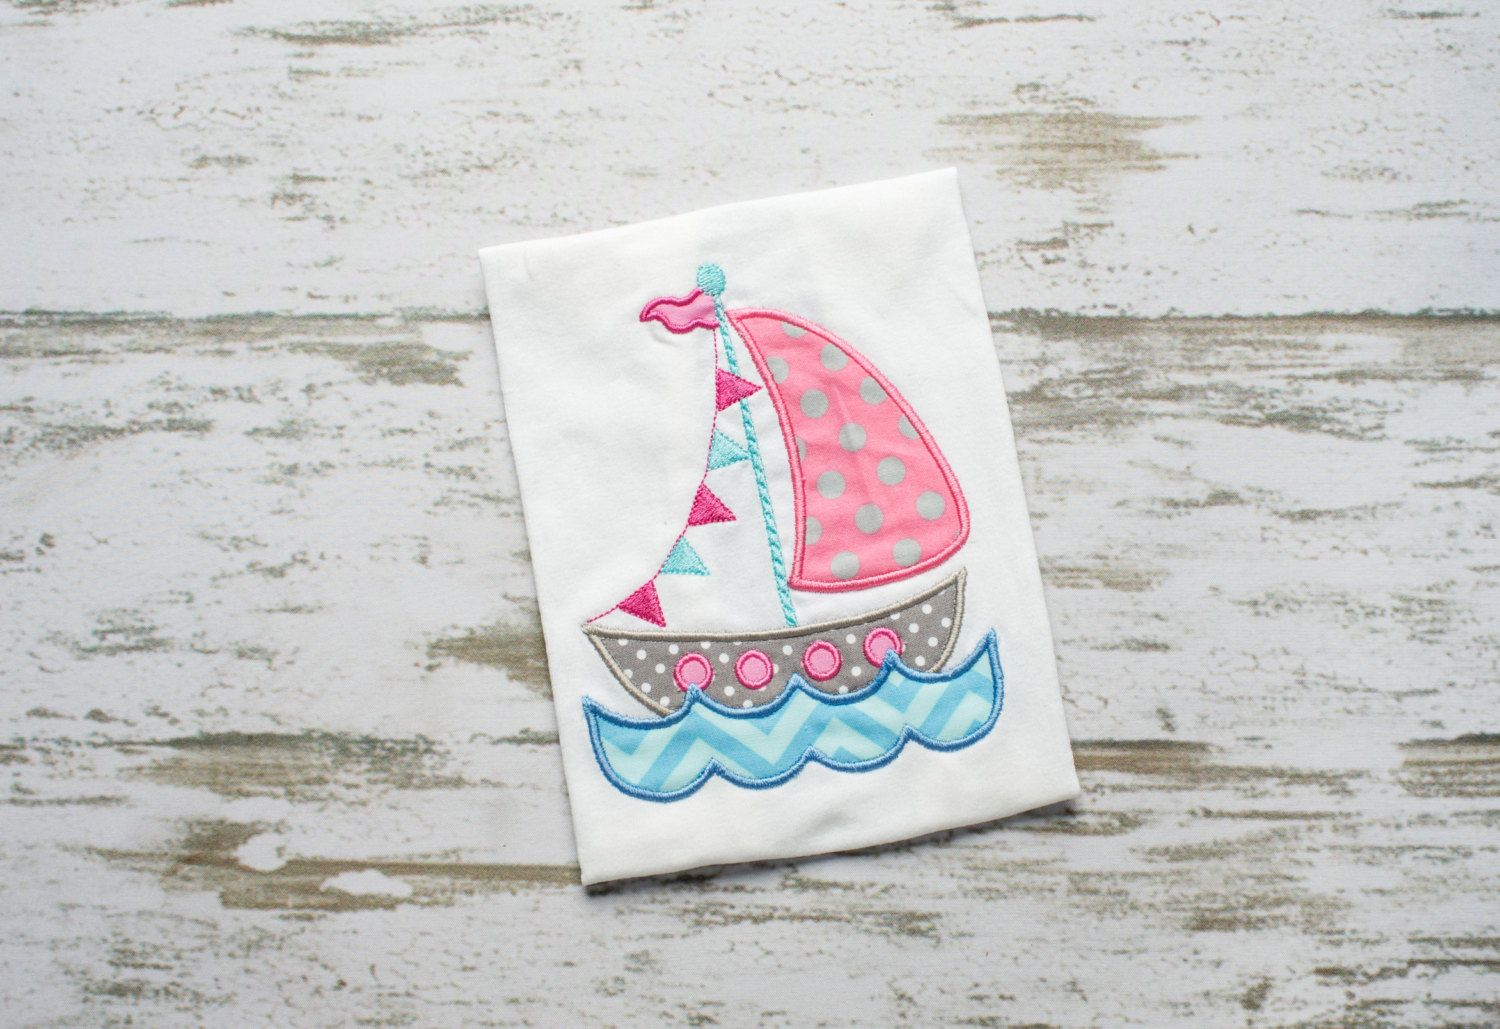 Flag Sailboat with Water Appliqué Embroidery Design 4x4, 5x7, 6x10 by AppleDumplinDesign on Etsy https://www.etsy.com/listing/227944057/flag-sailboat-with-water-applique